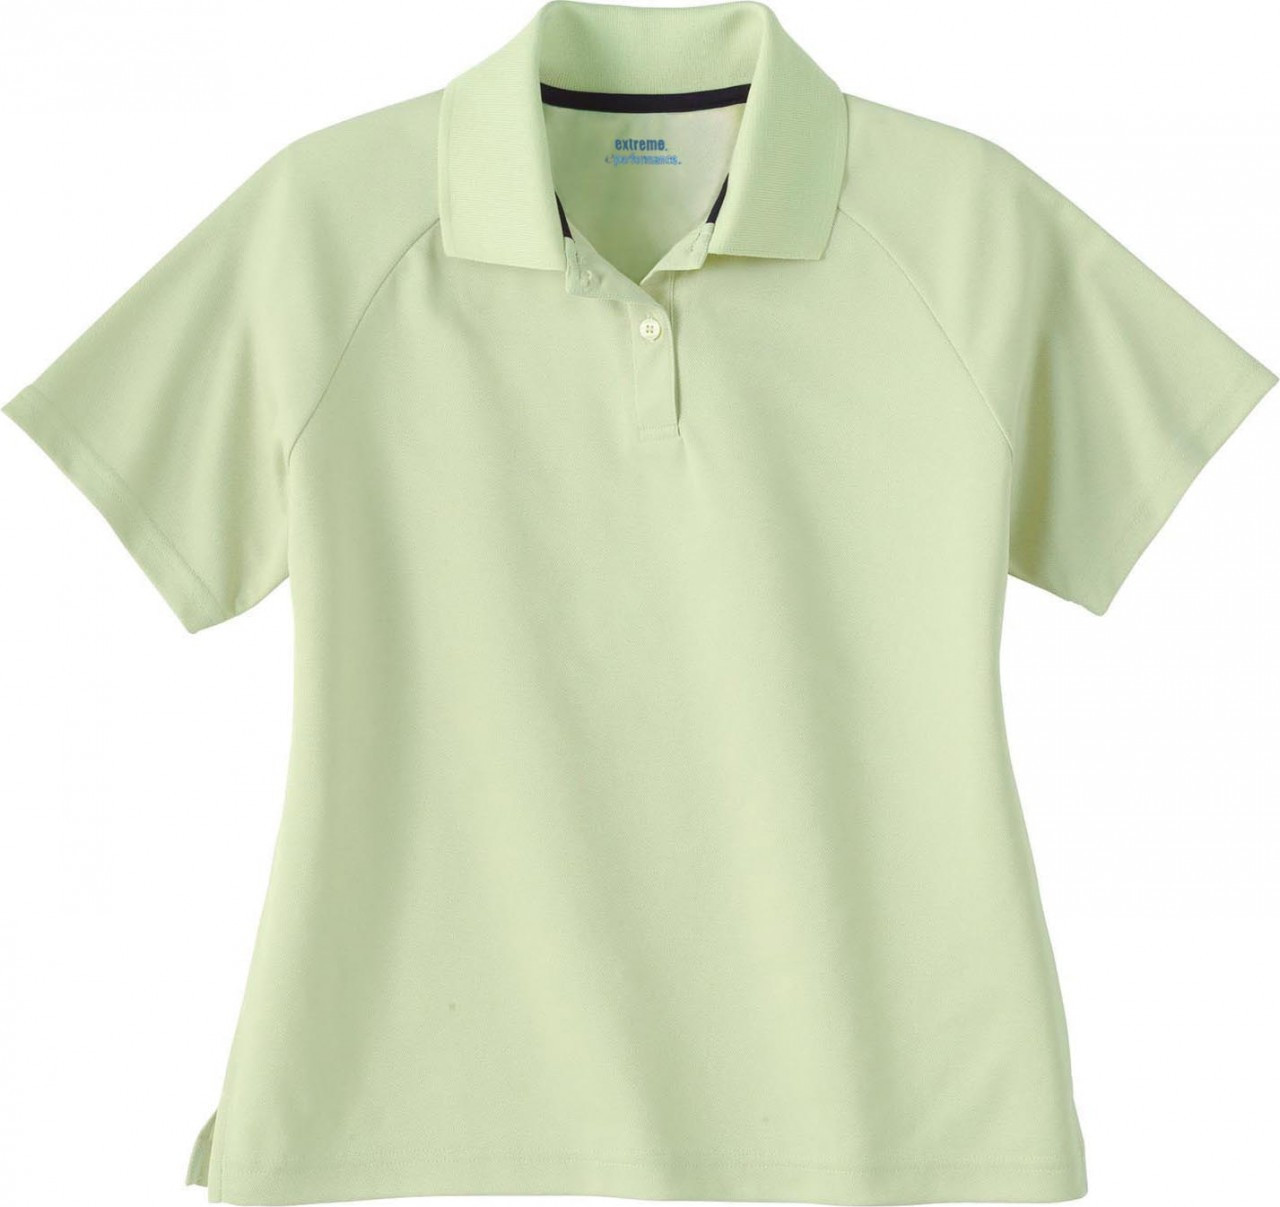 Lime Sherbert - 75046 Extreme Ladies' Eperformance Pique Polo Shirt | BlankClothing.ca